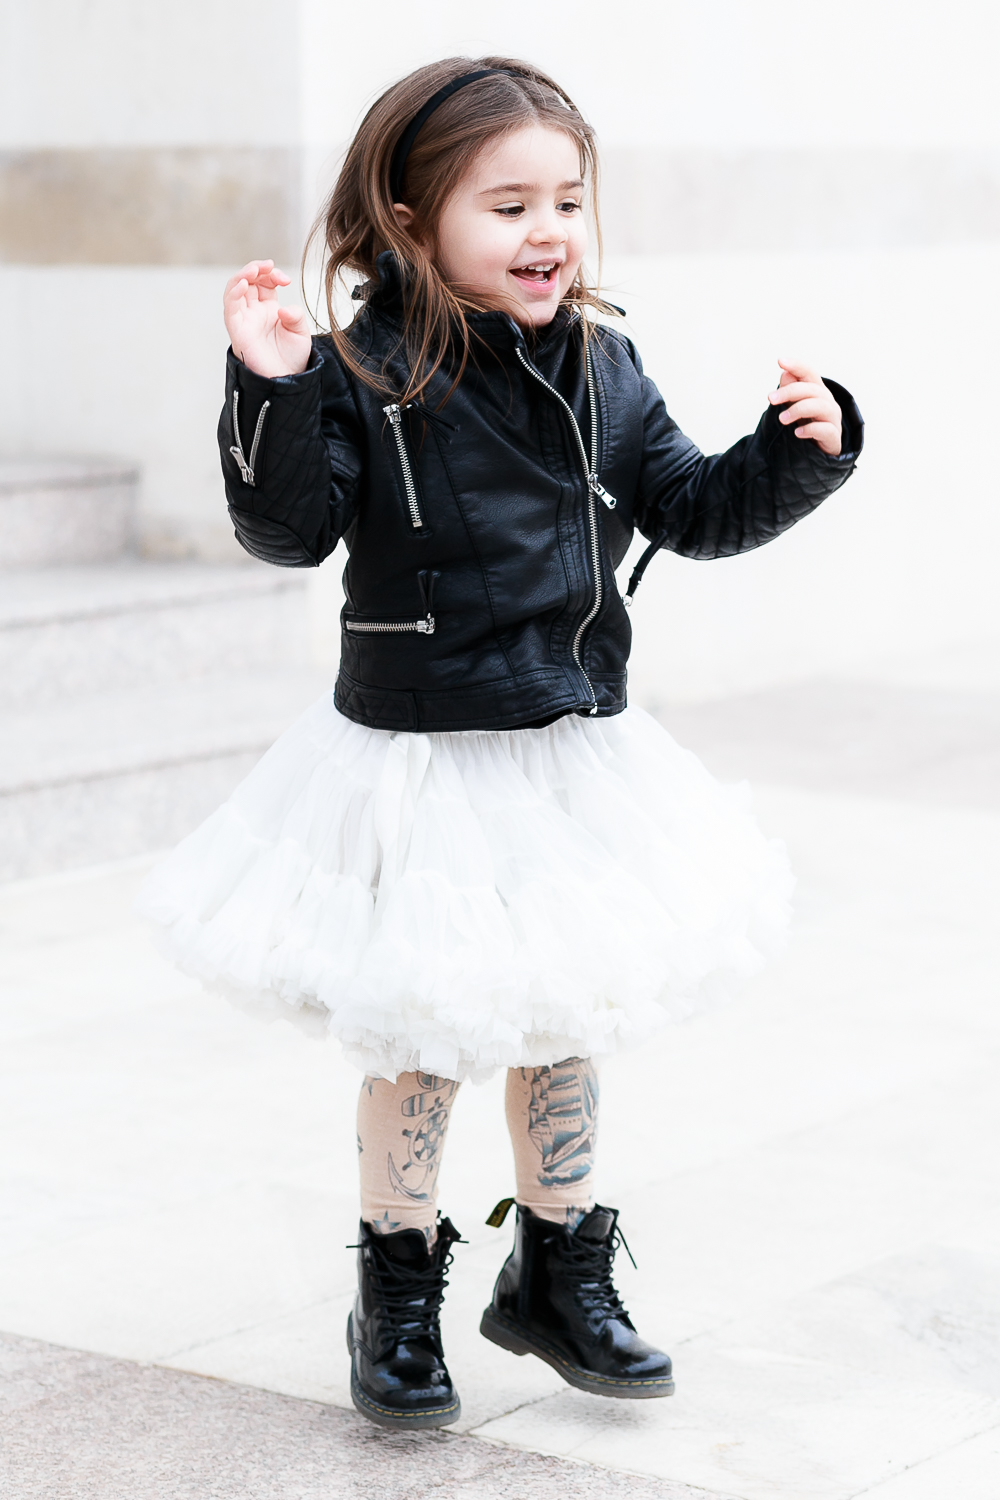 How to Wear Tutu Skirts With an Edge: Rebel Chic | Kids Style by Miss Kaira | EdgyCuts